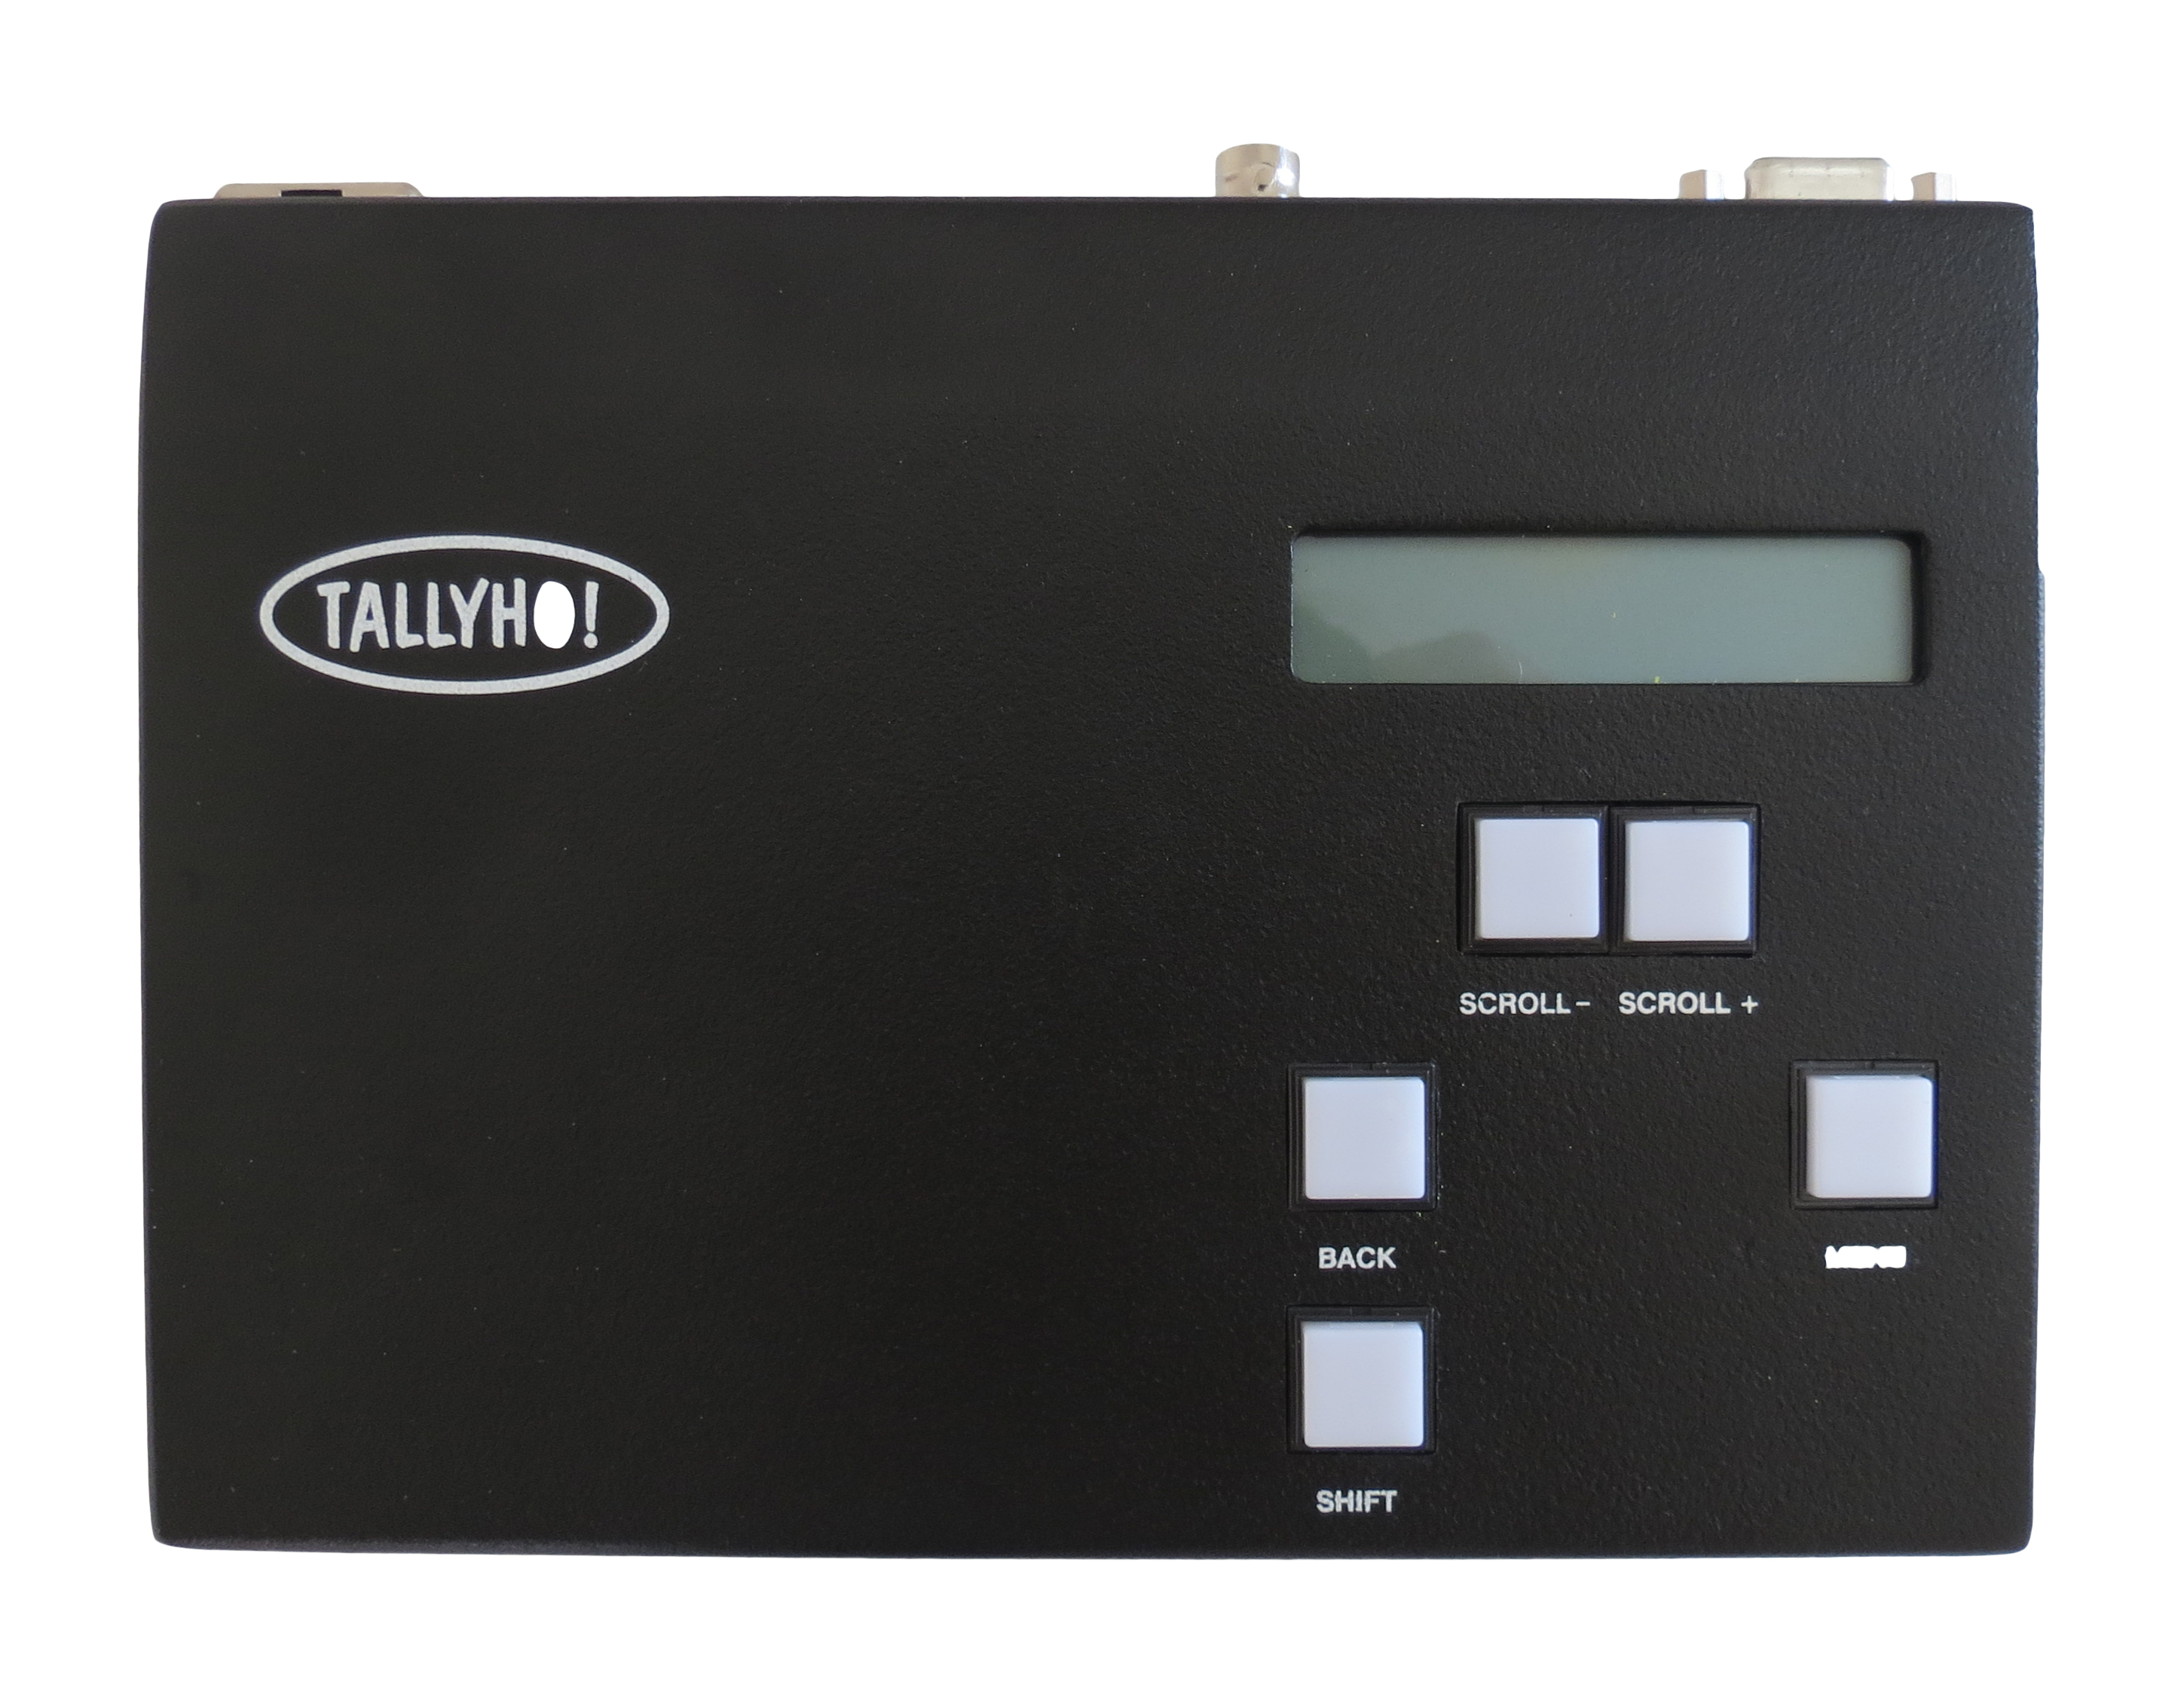 Tally Ho! Wireless System - Top of Receiver